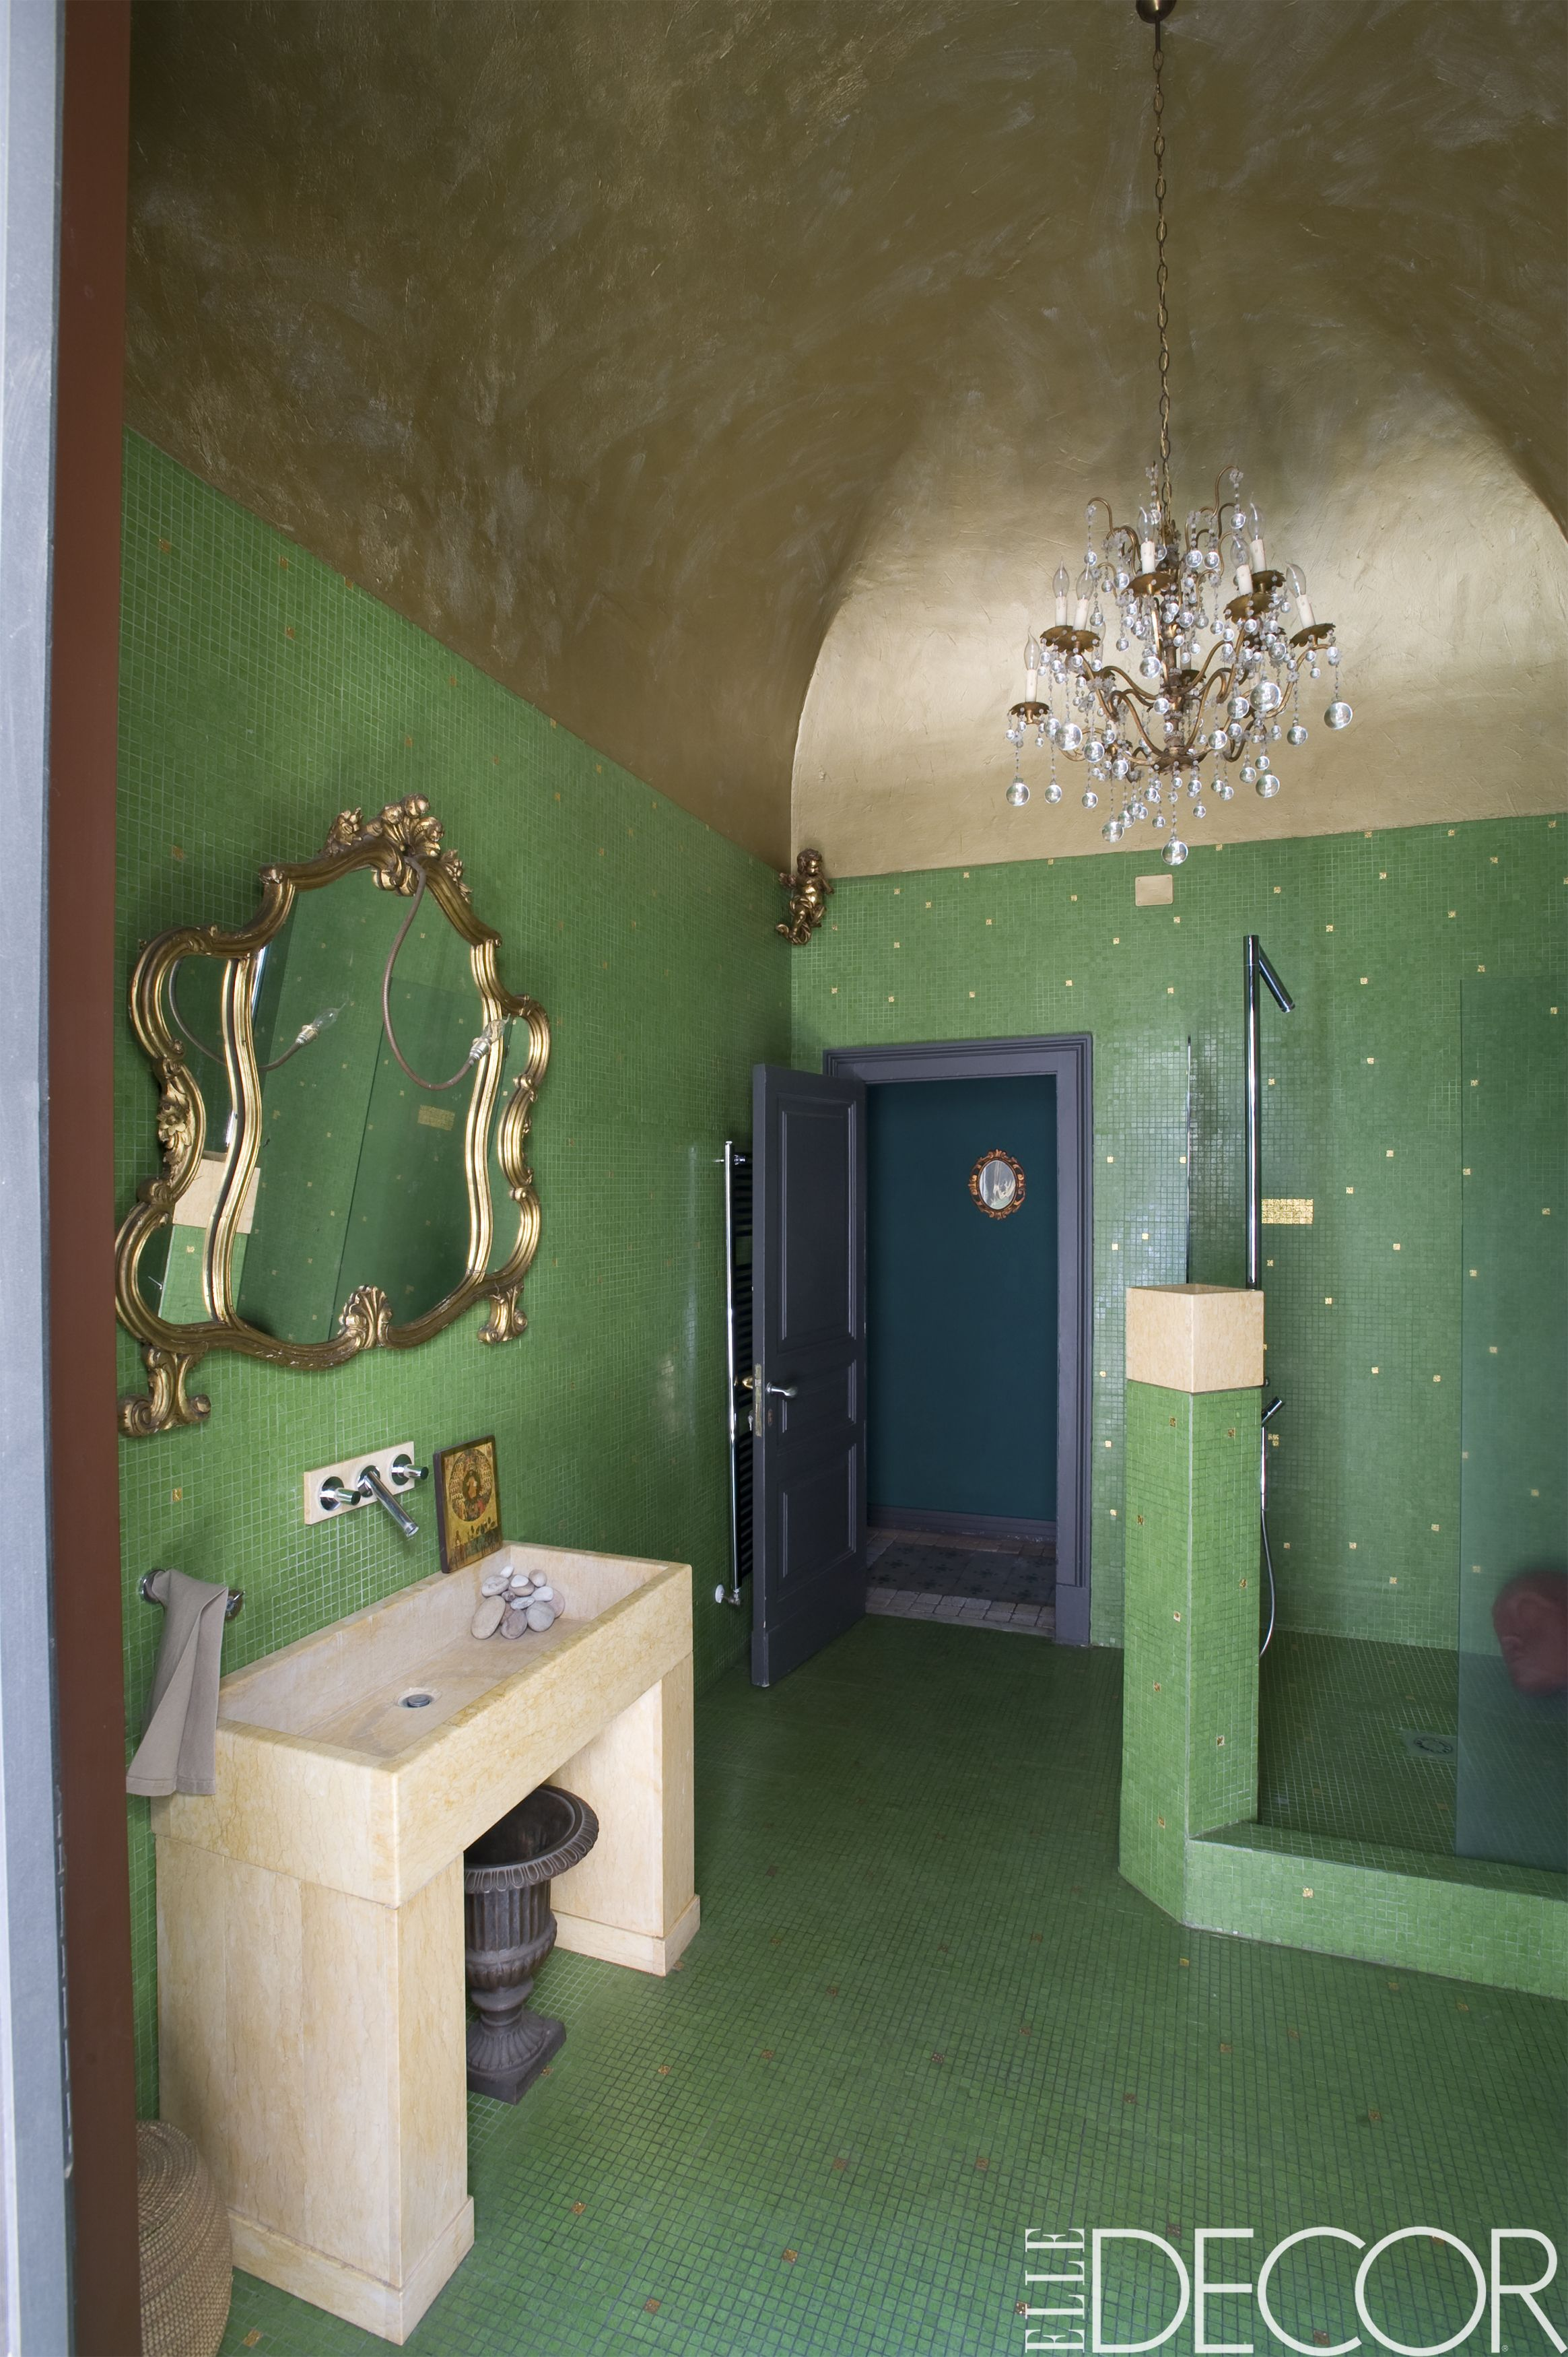 Bathroom painting ideas green - Bathroom Painting Ideas Green 35